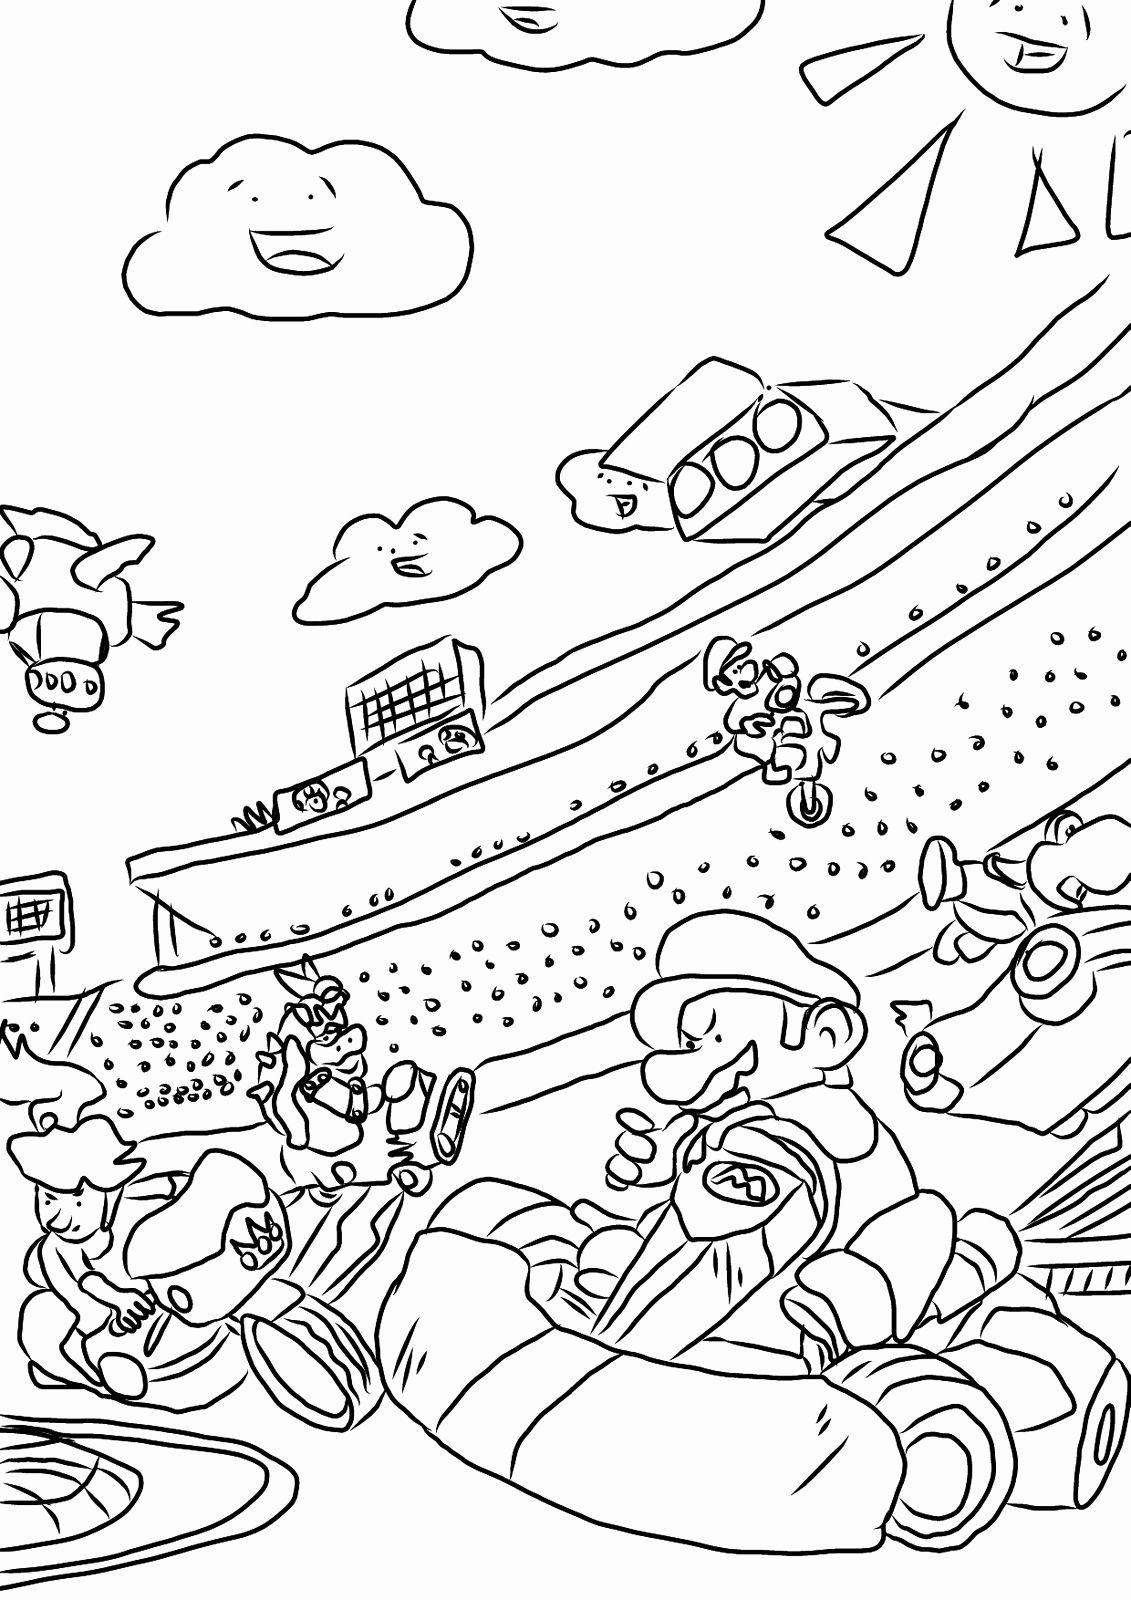 Mario Coloring Pages Printable Luxury Mario Kart Coloring Pages